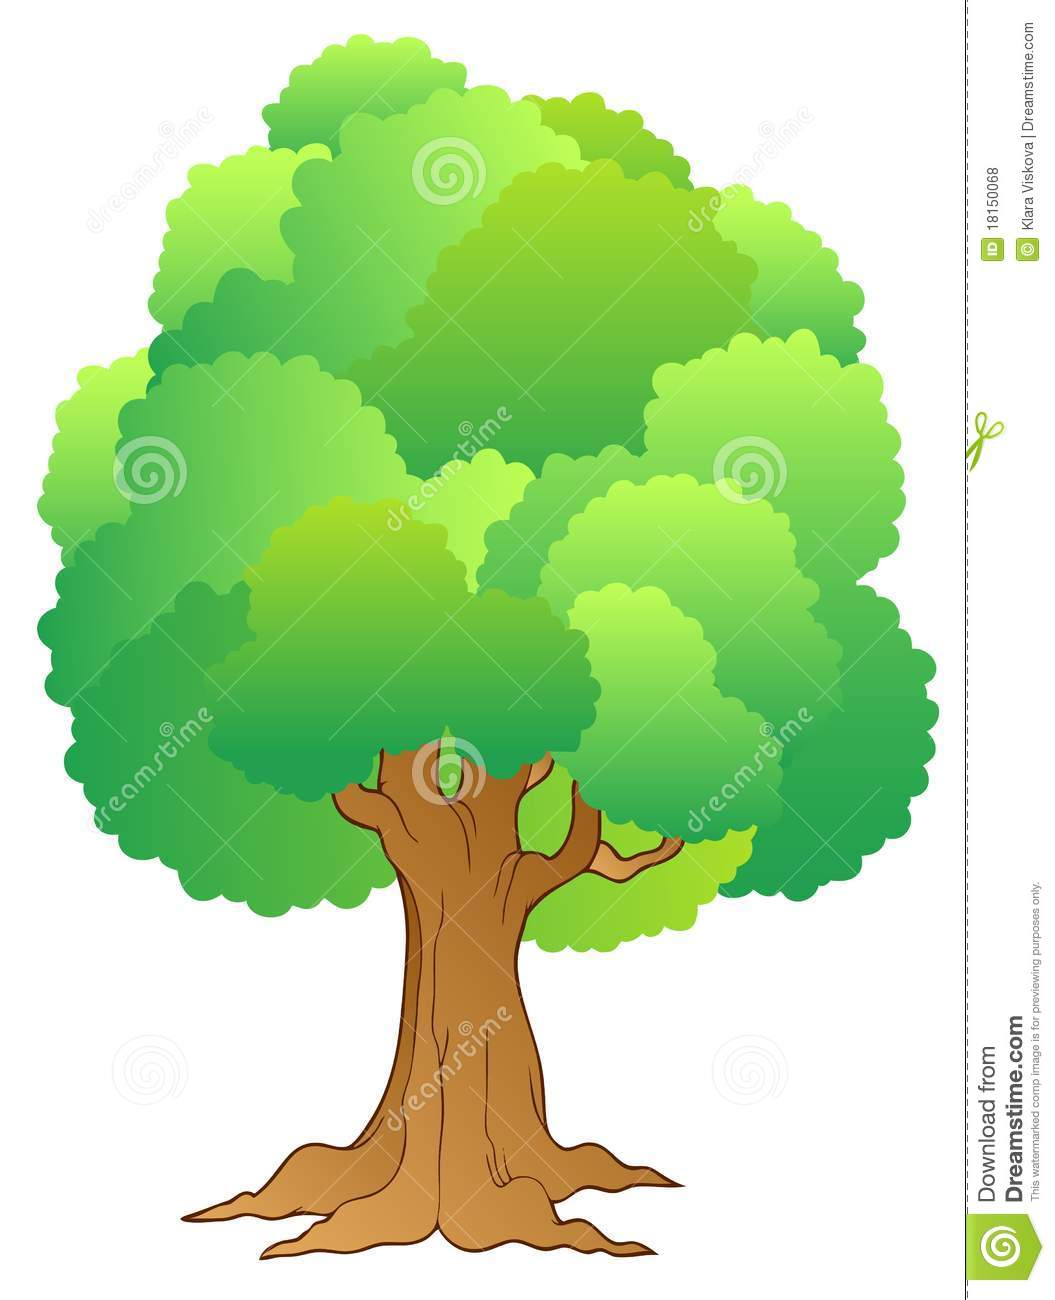 grand arbre avec la cime d 39 arbre verte illustration de vecteur illustration du for t. Black Bedroom Furniture Sets. Home Design Ideas